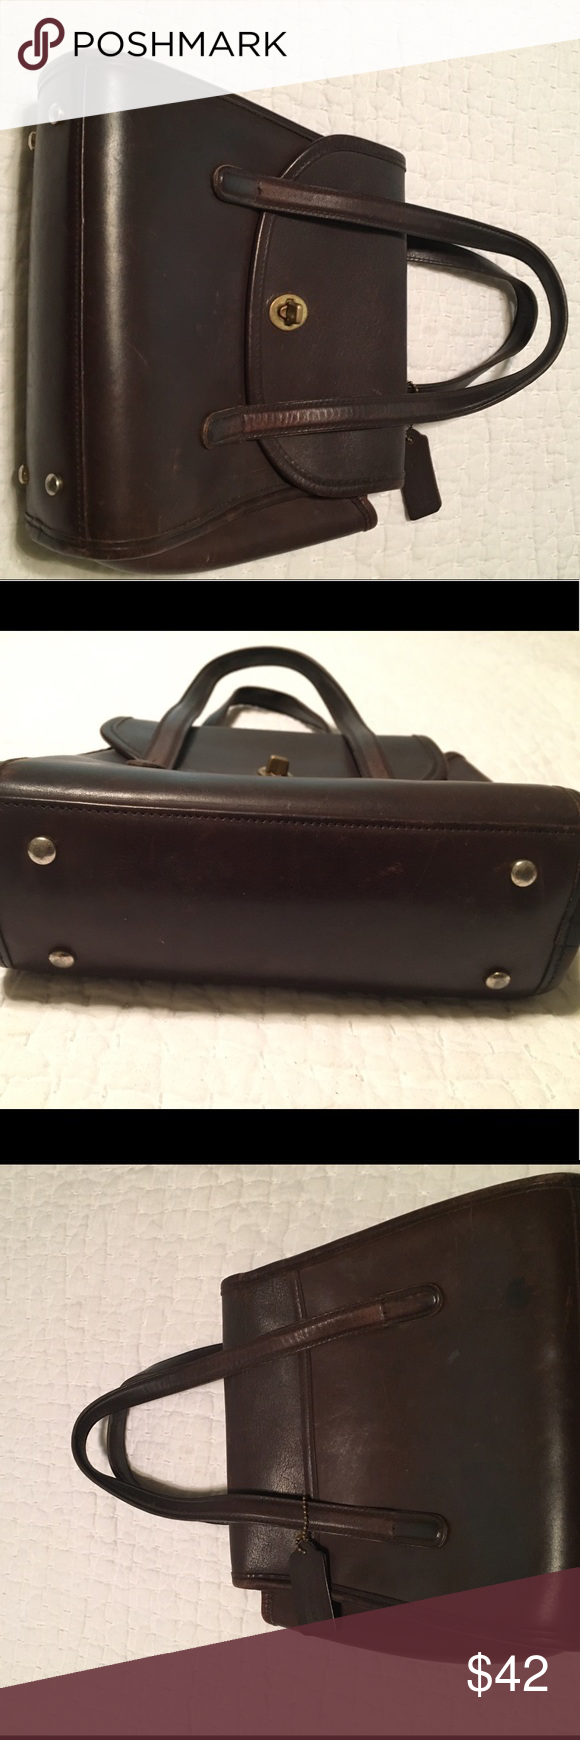 Coach satchel type purse. Authentic. Great purse! Great for business, jeans  or anthing else. Very vestige. Very good condition. Coach Bags Satchels ee90808df0